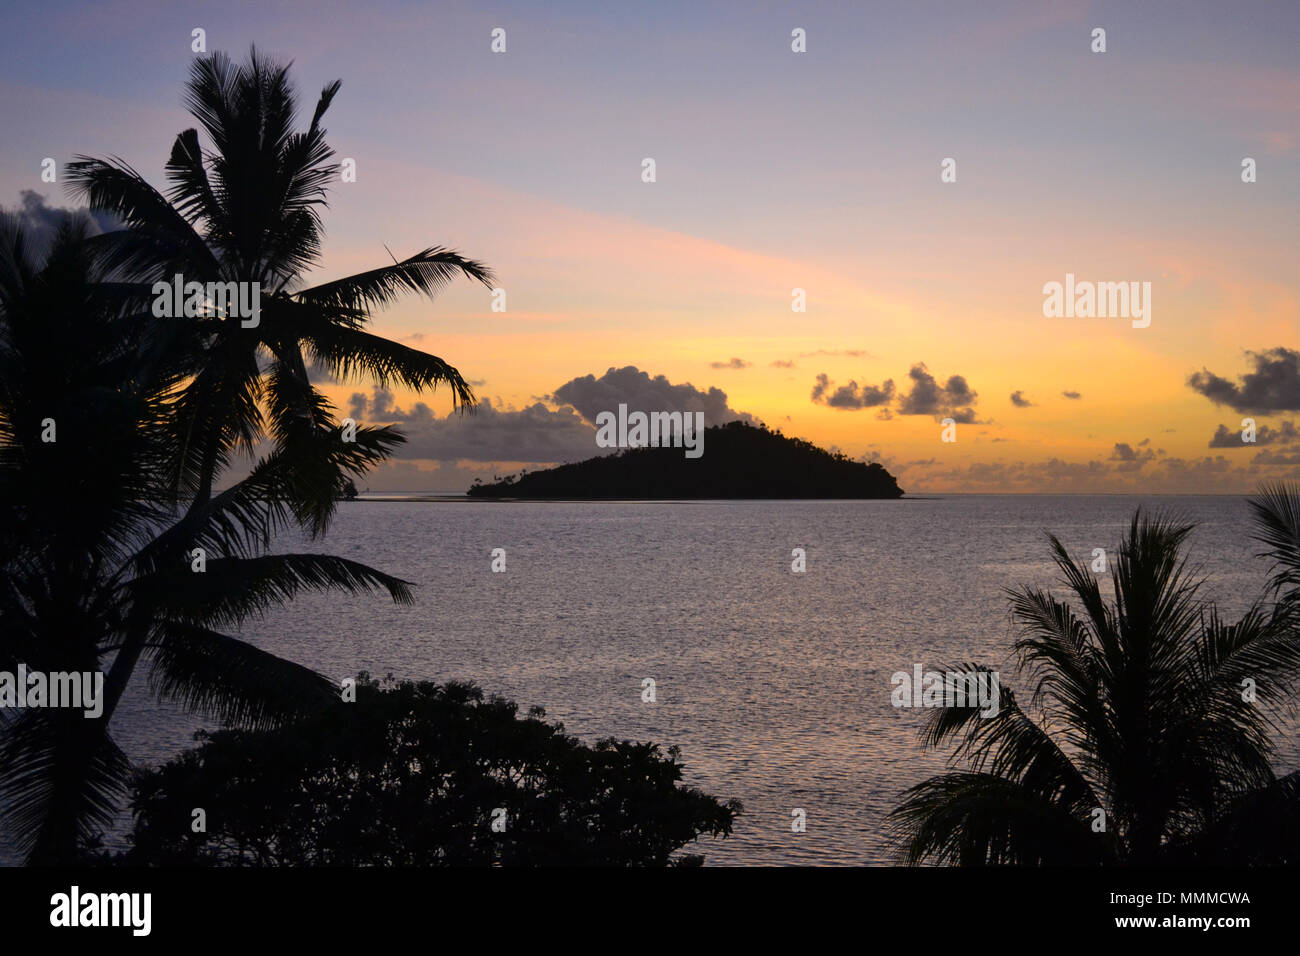 Sunset view of Luaniva motu, Wallis Island, Wallis & Futuna, South Pacific - Stock Image